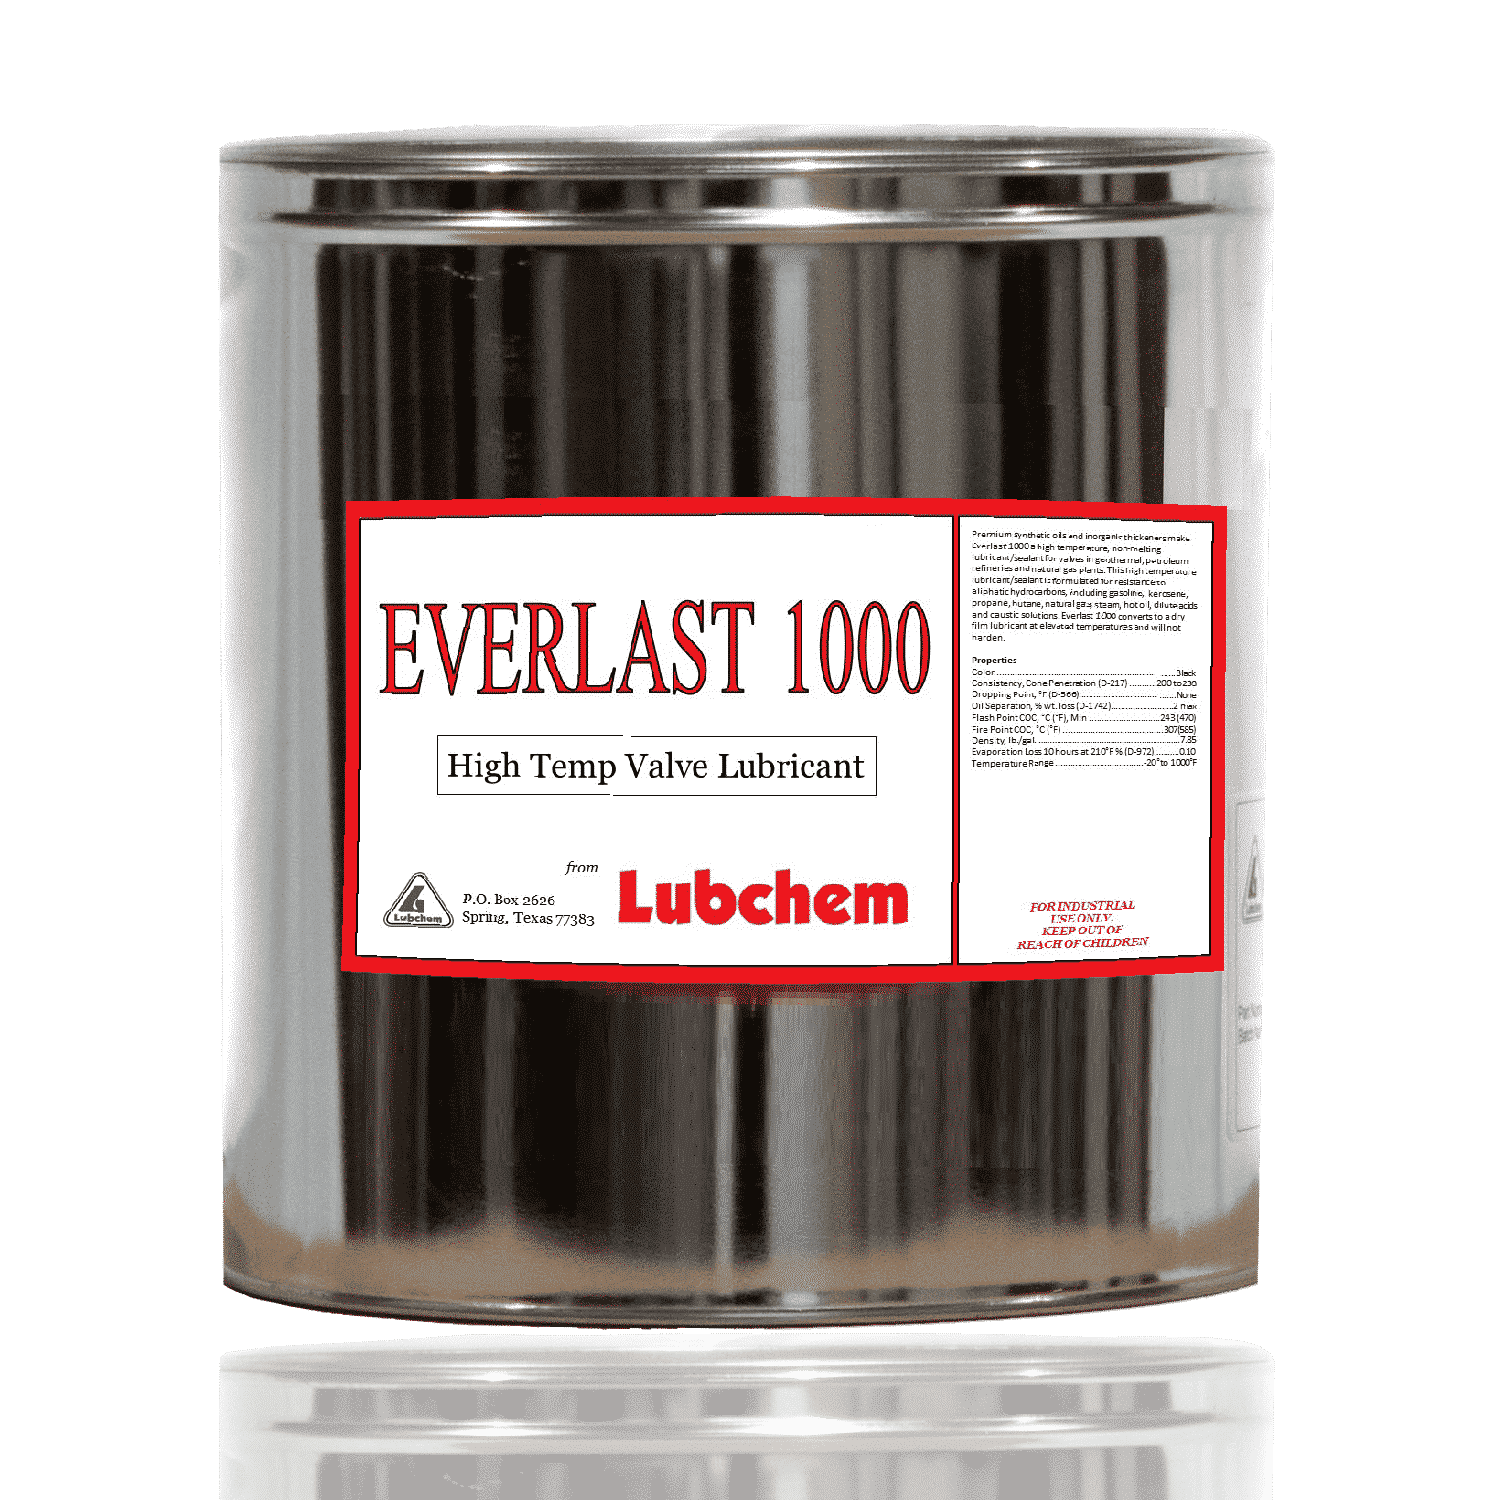 lubchem everlast 1000 can-min